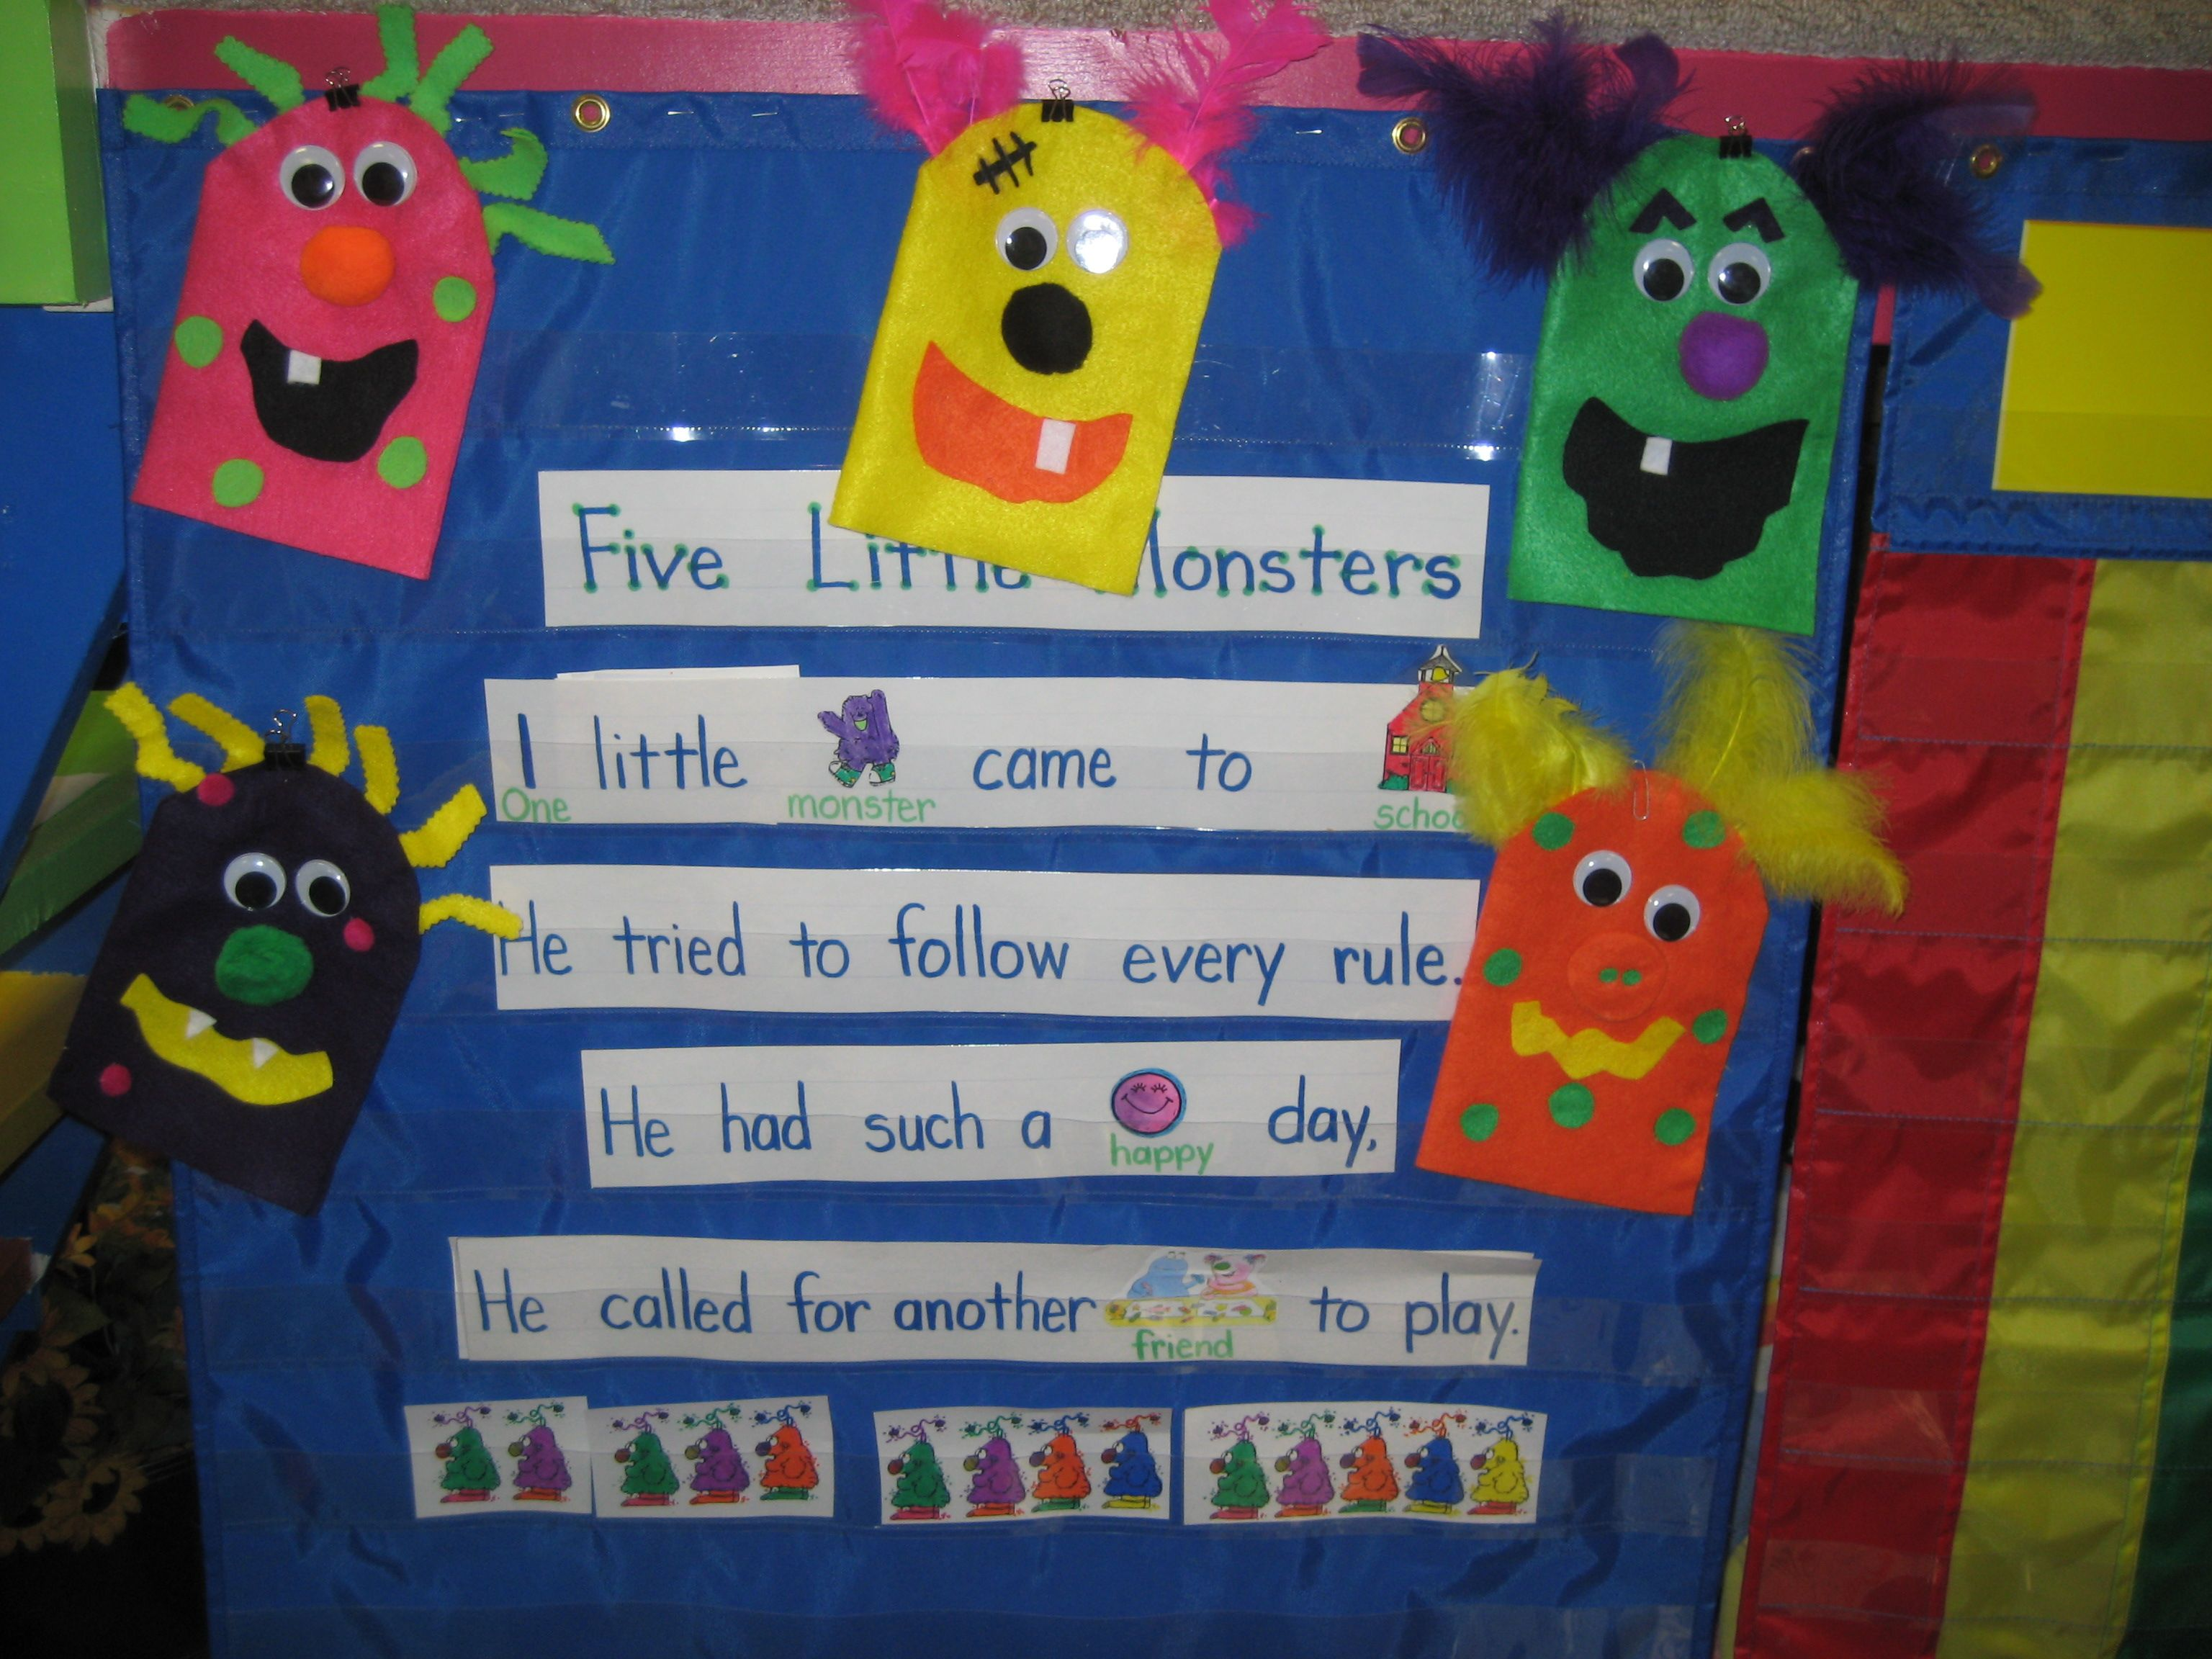 5 Little Monsters Song And Puppets Monster Monster Theme Classroom Monster Classroom Halloween School